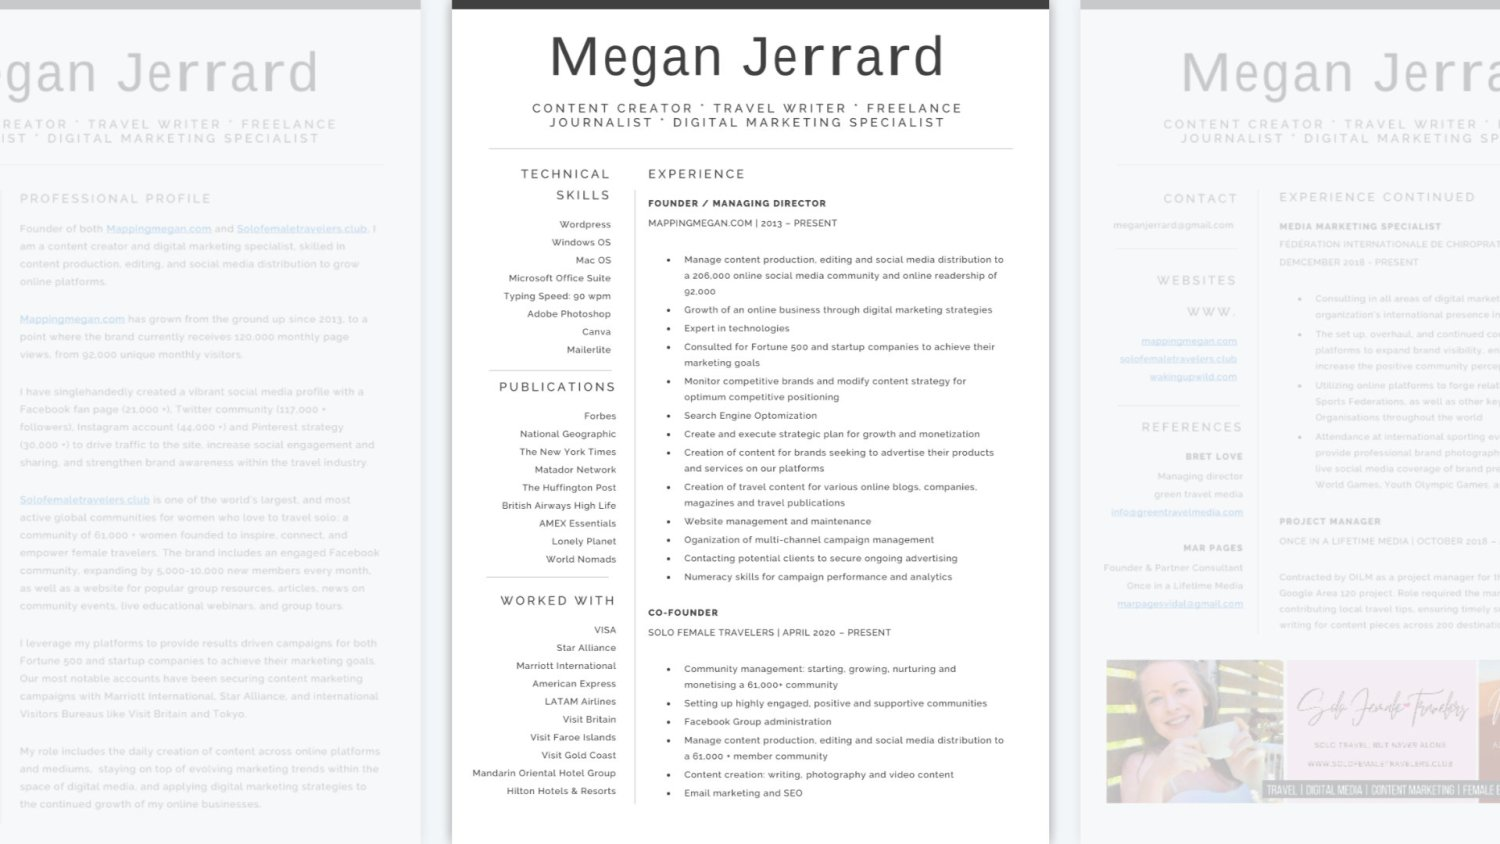 Travel look good on a resume